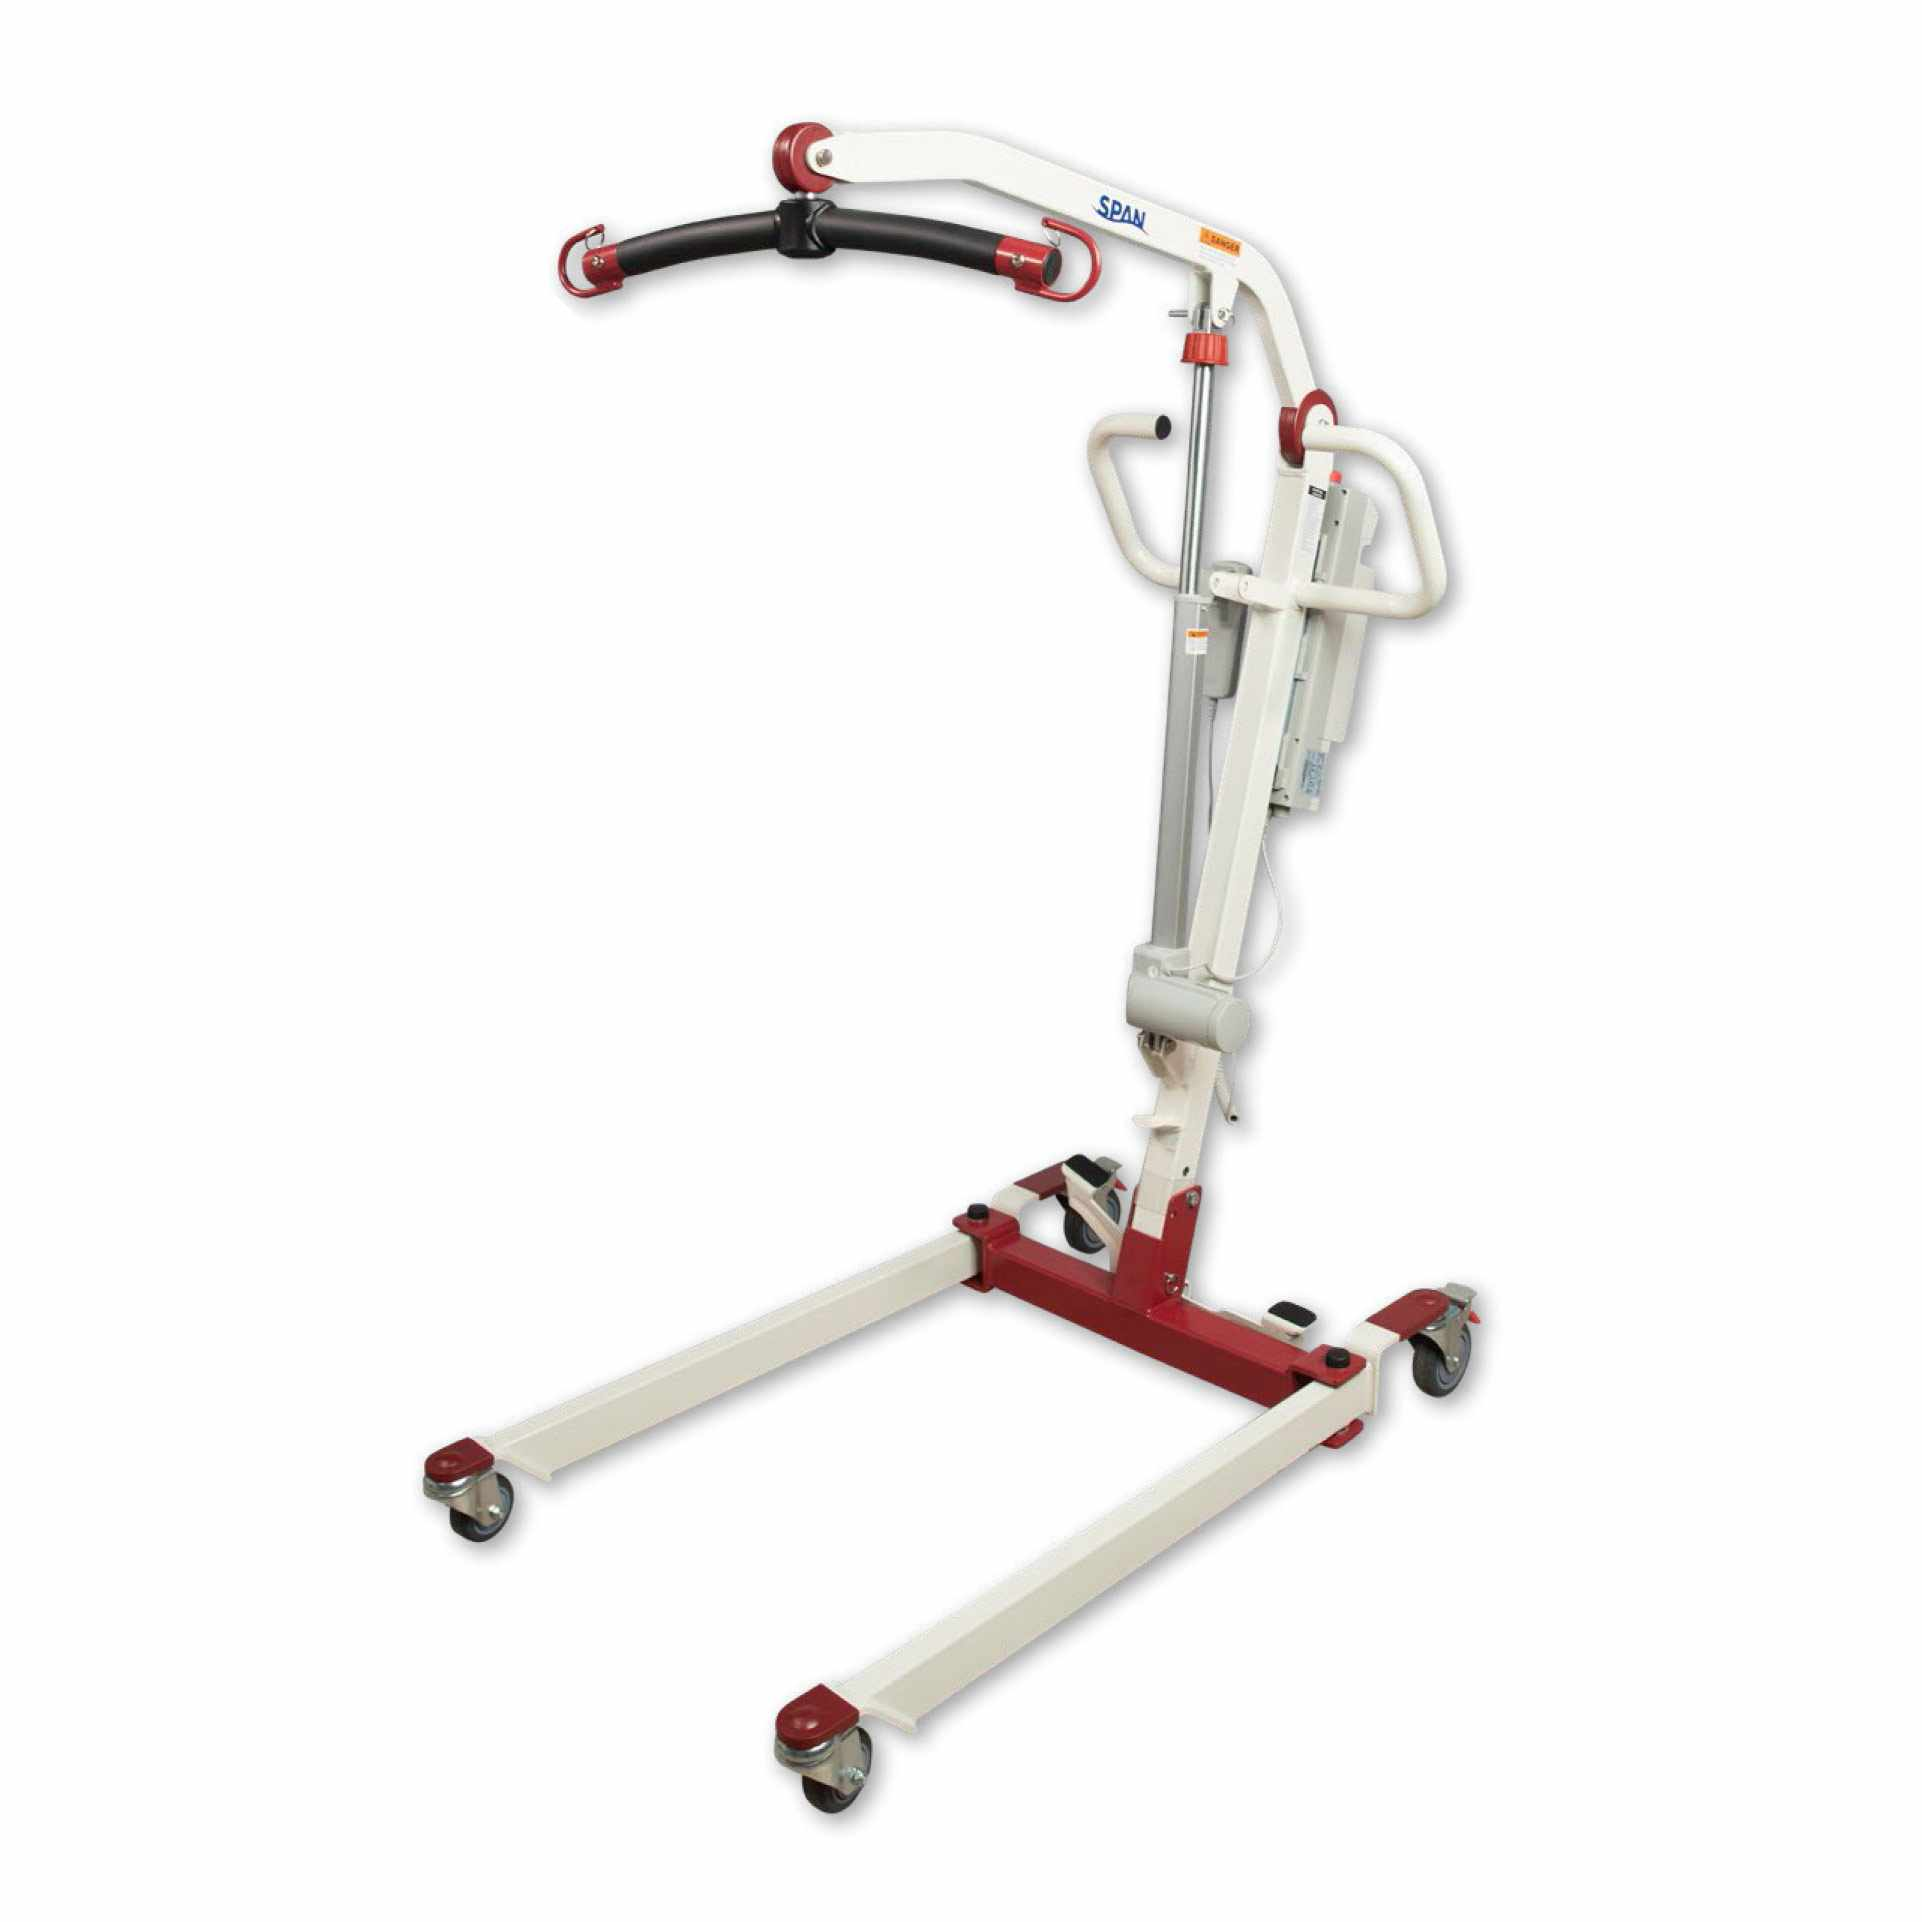 Span America F400 foldable/portable patient lift